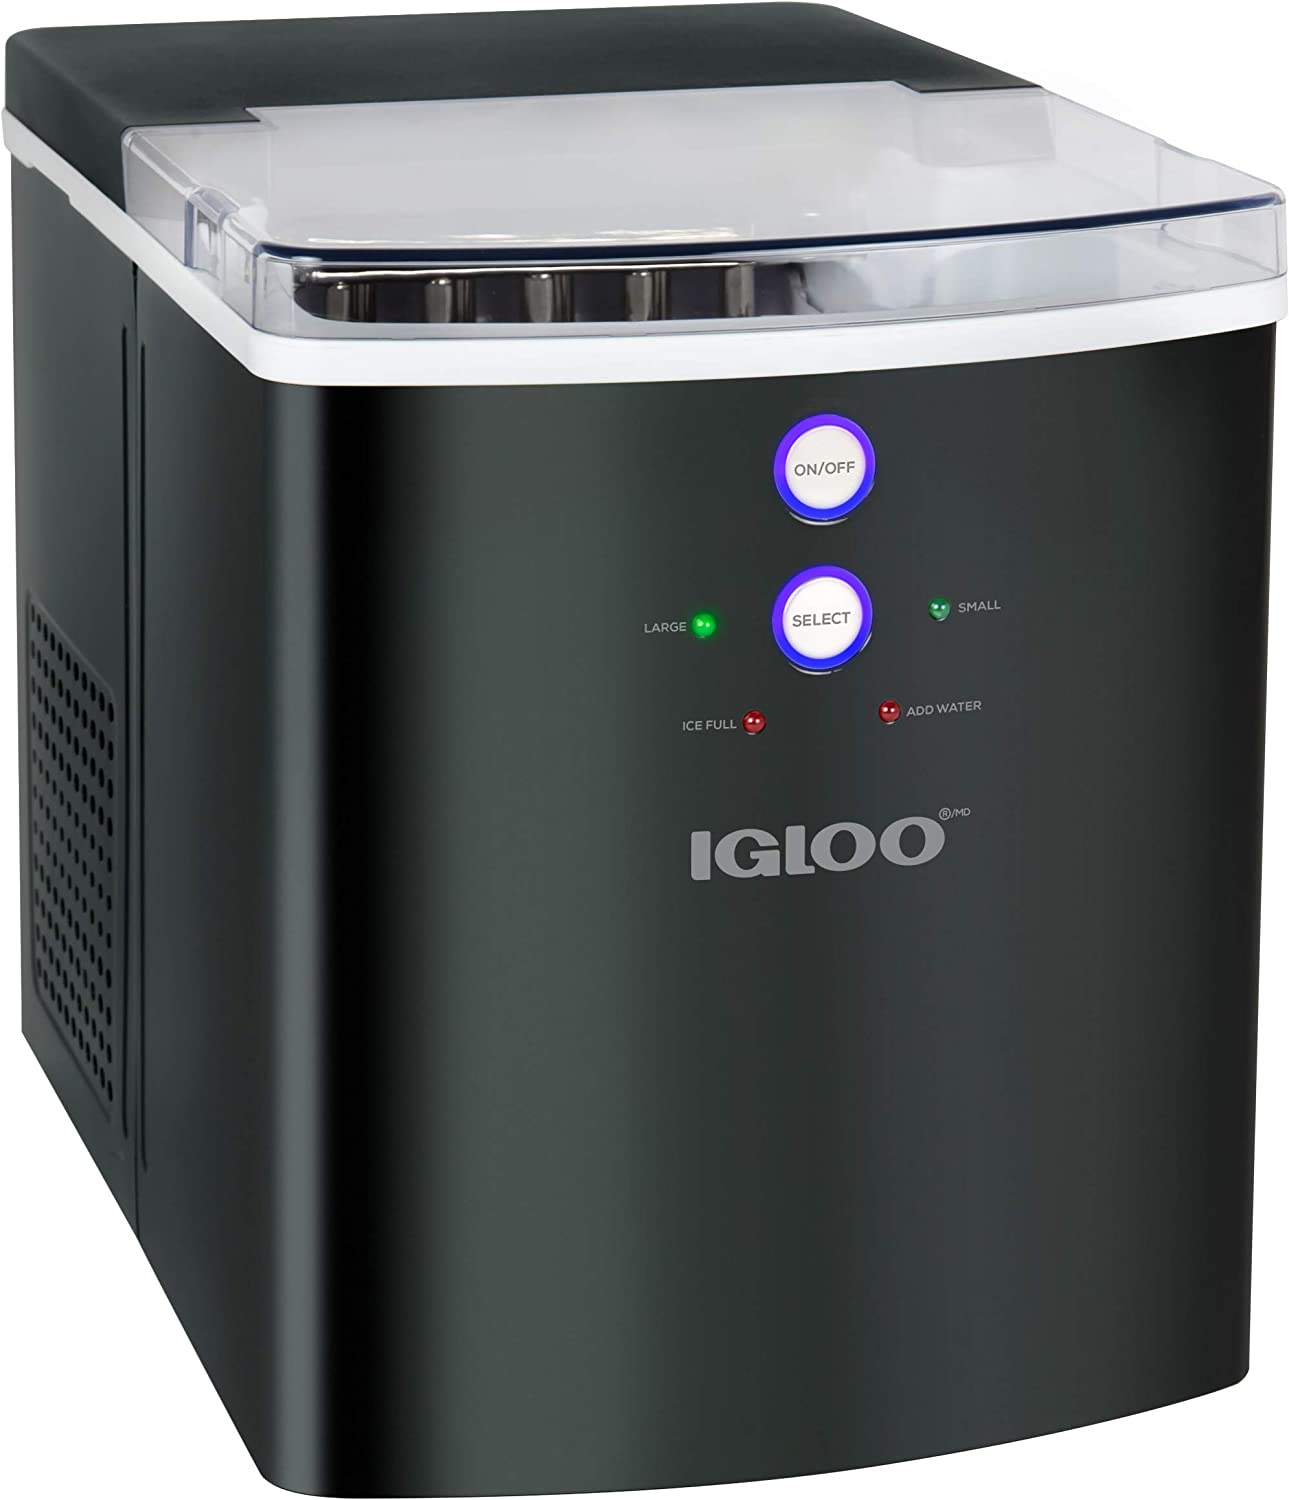 Igloo ICEB33BS 33-Pound Automatic Portable Countertop Ice Maker Machine, Black Stainless Steel